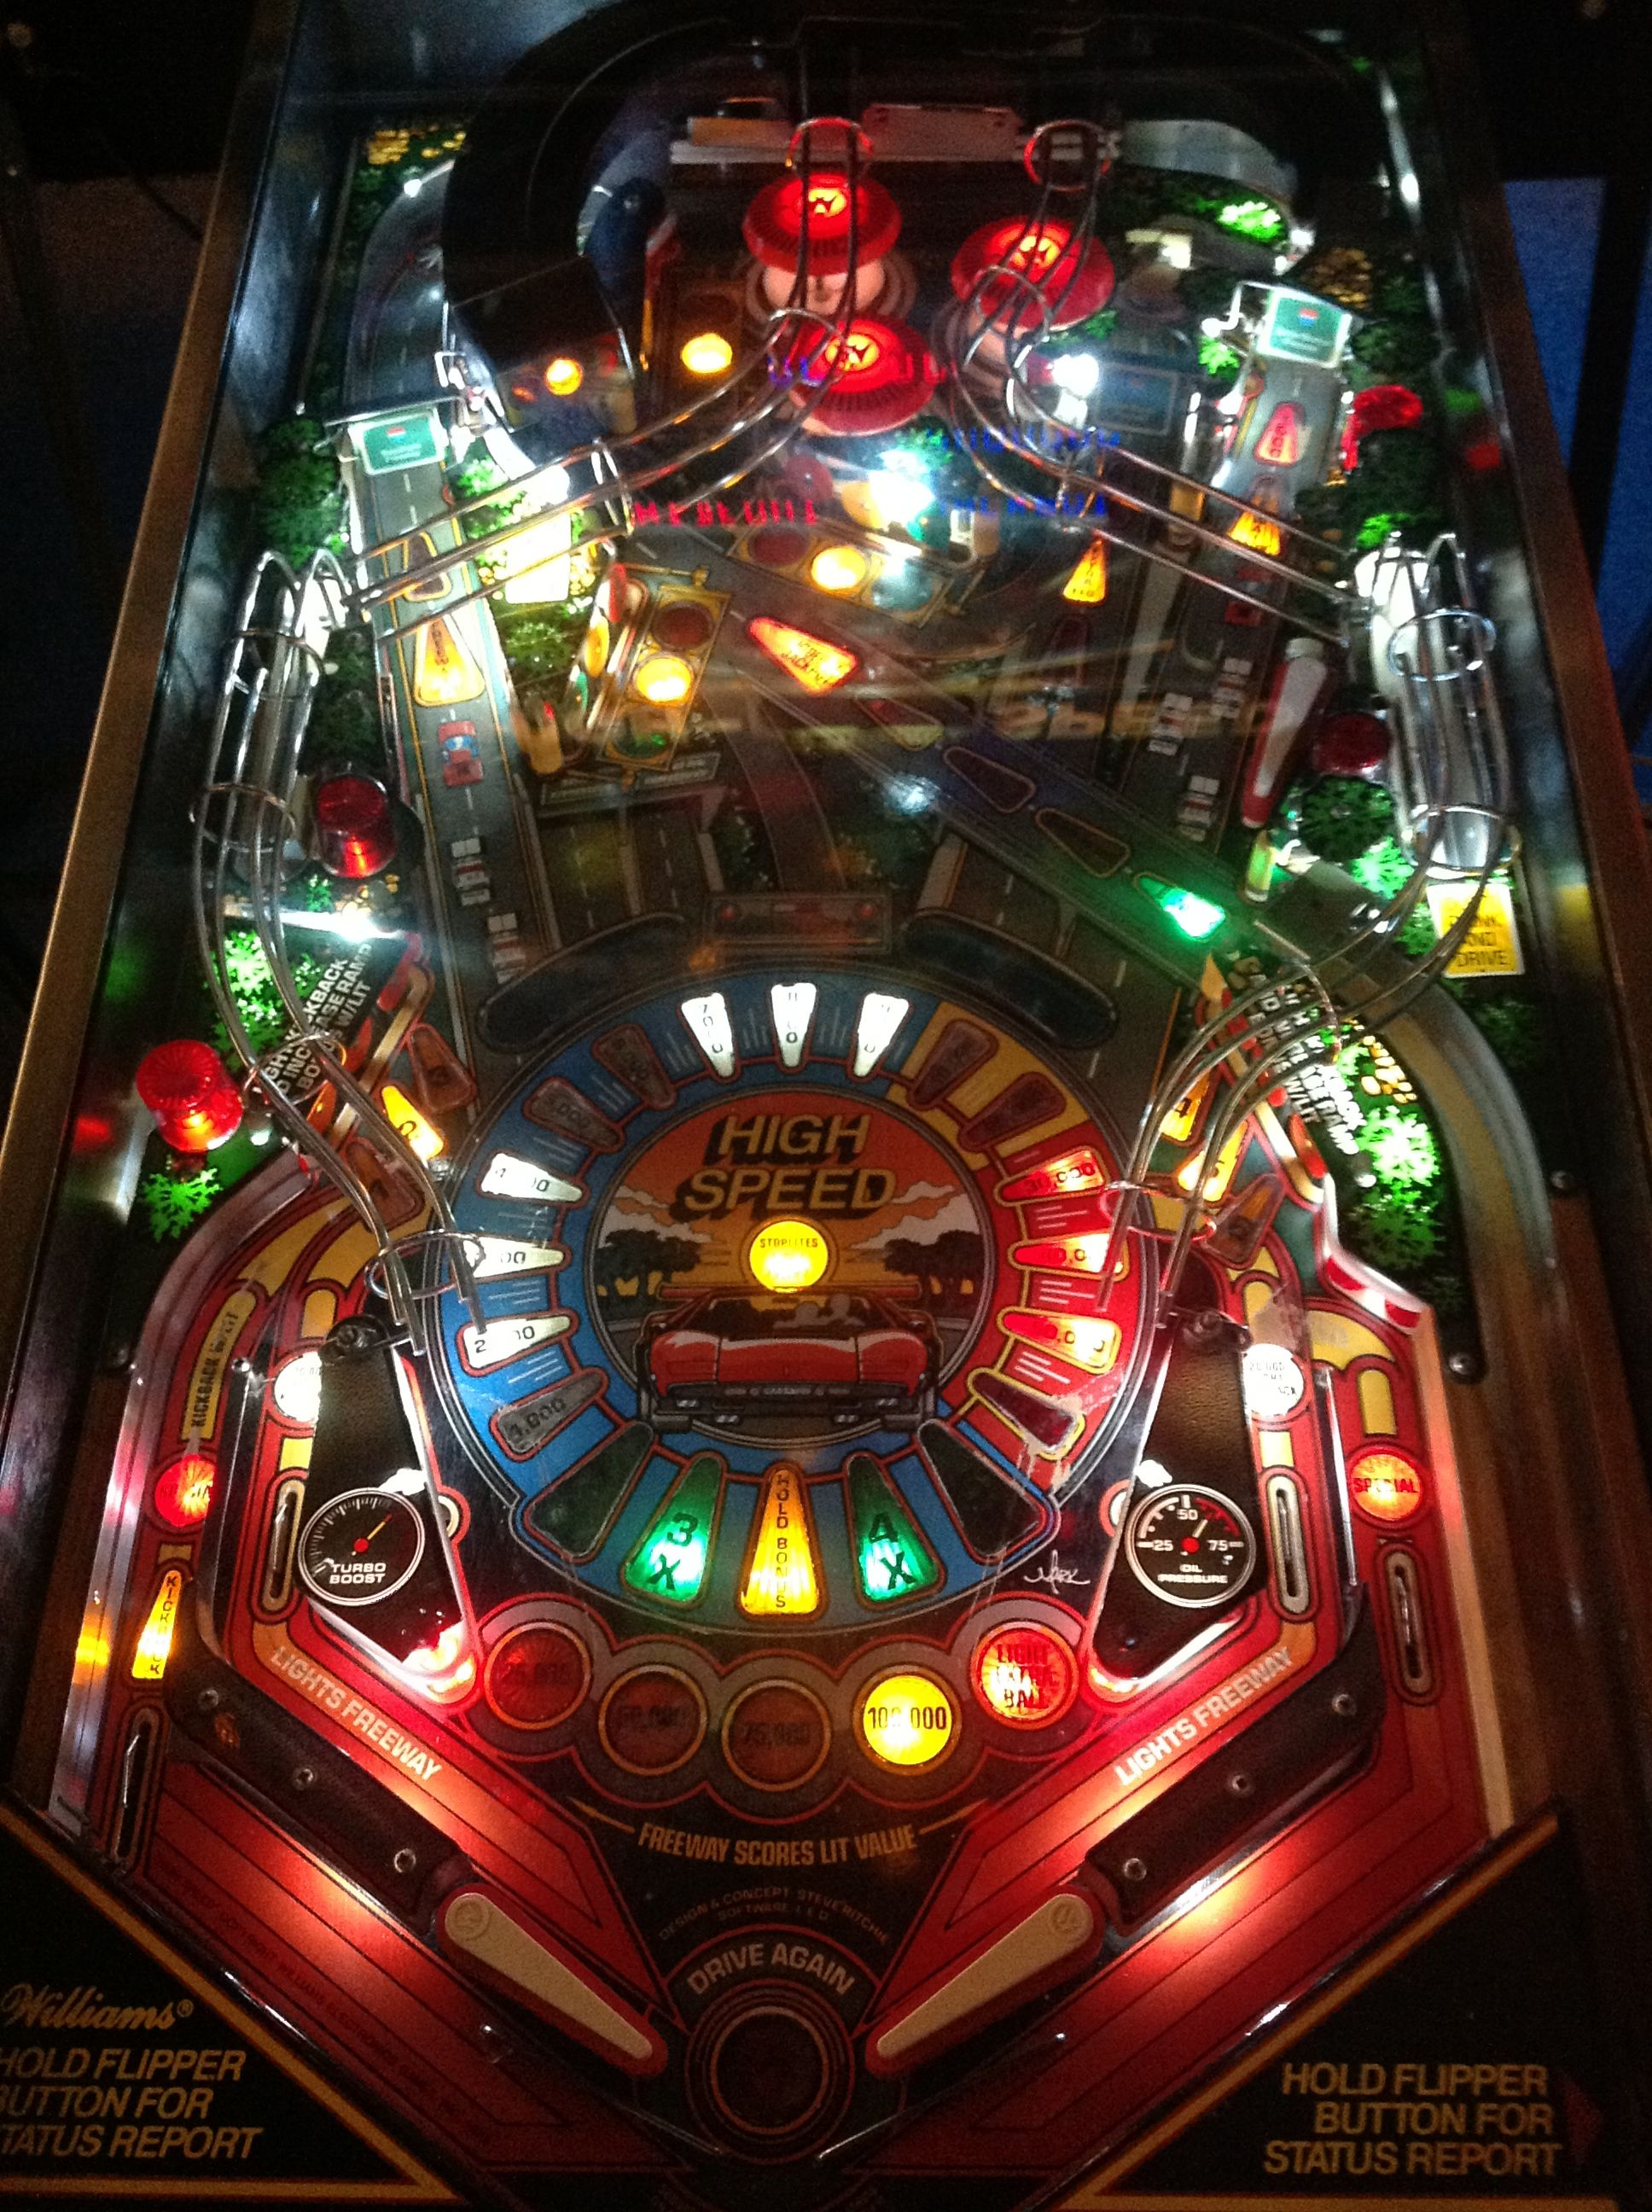 Highspeed Pinball designed by Steve Ritchie. Fun game